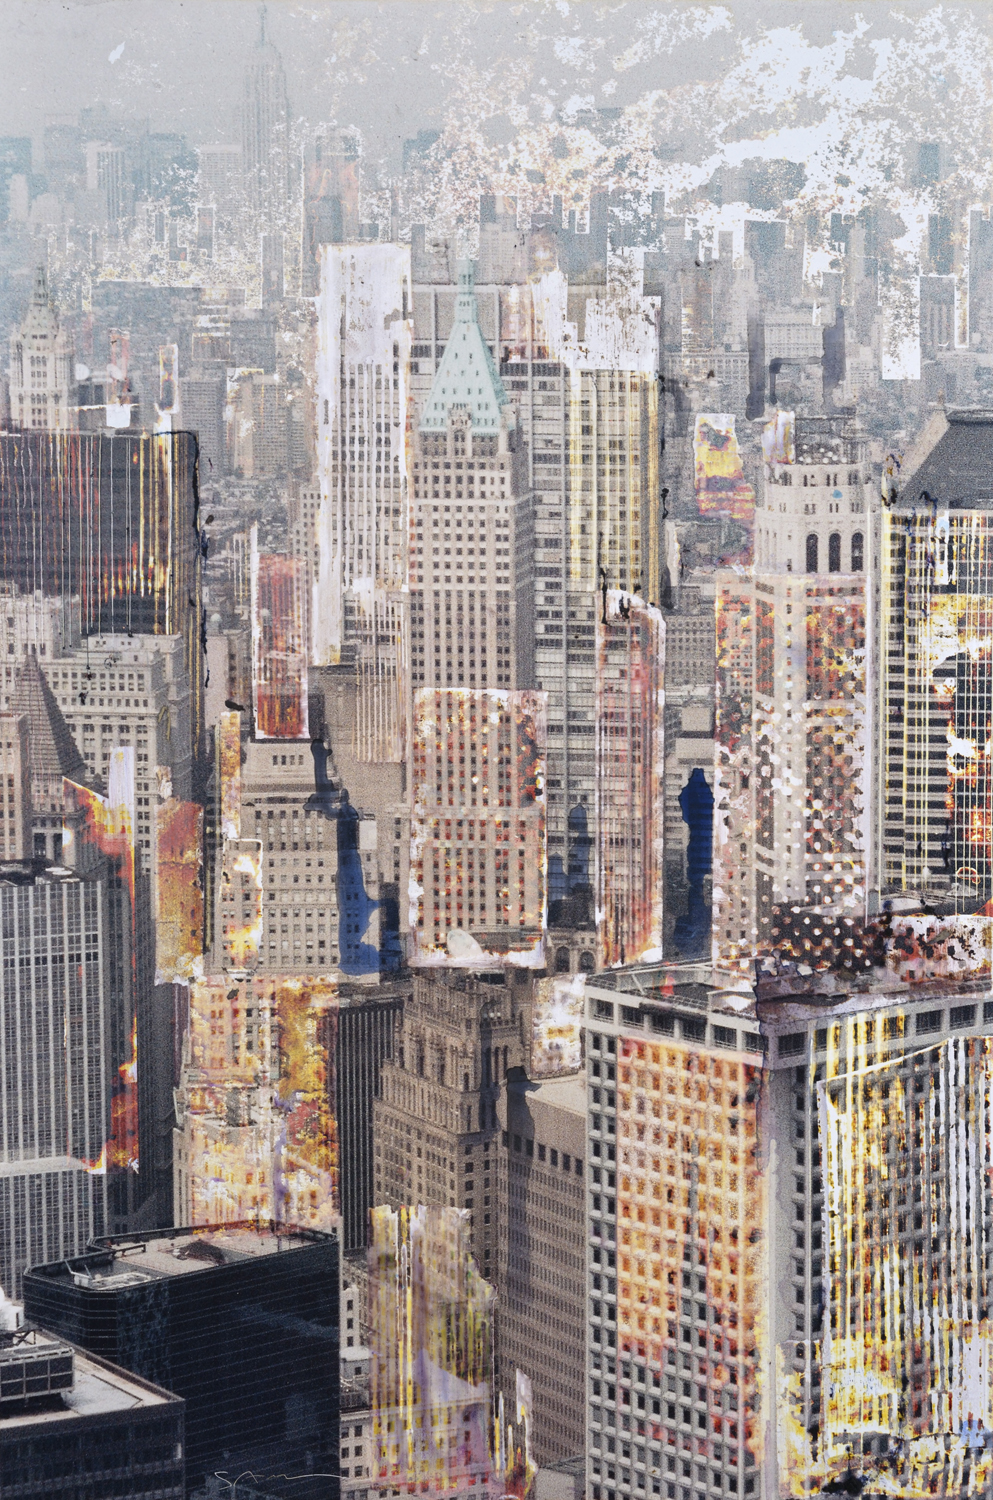 GOTTFRIED SALZMANN, NY Midtown, mixed media on photograph and wood, 29 x 19.5 in, 2017